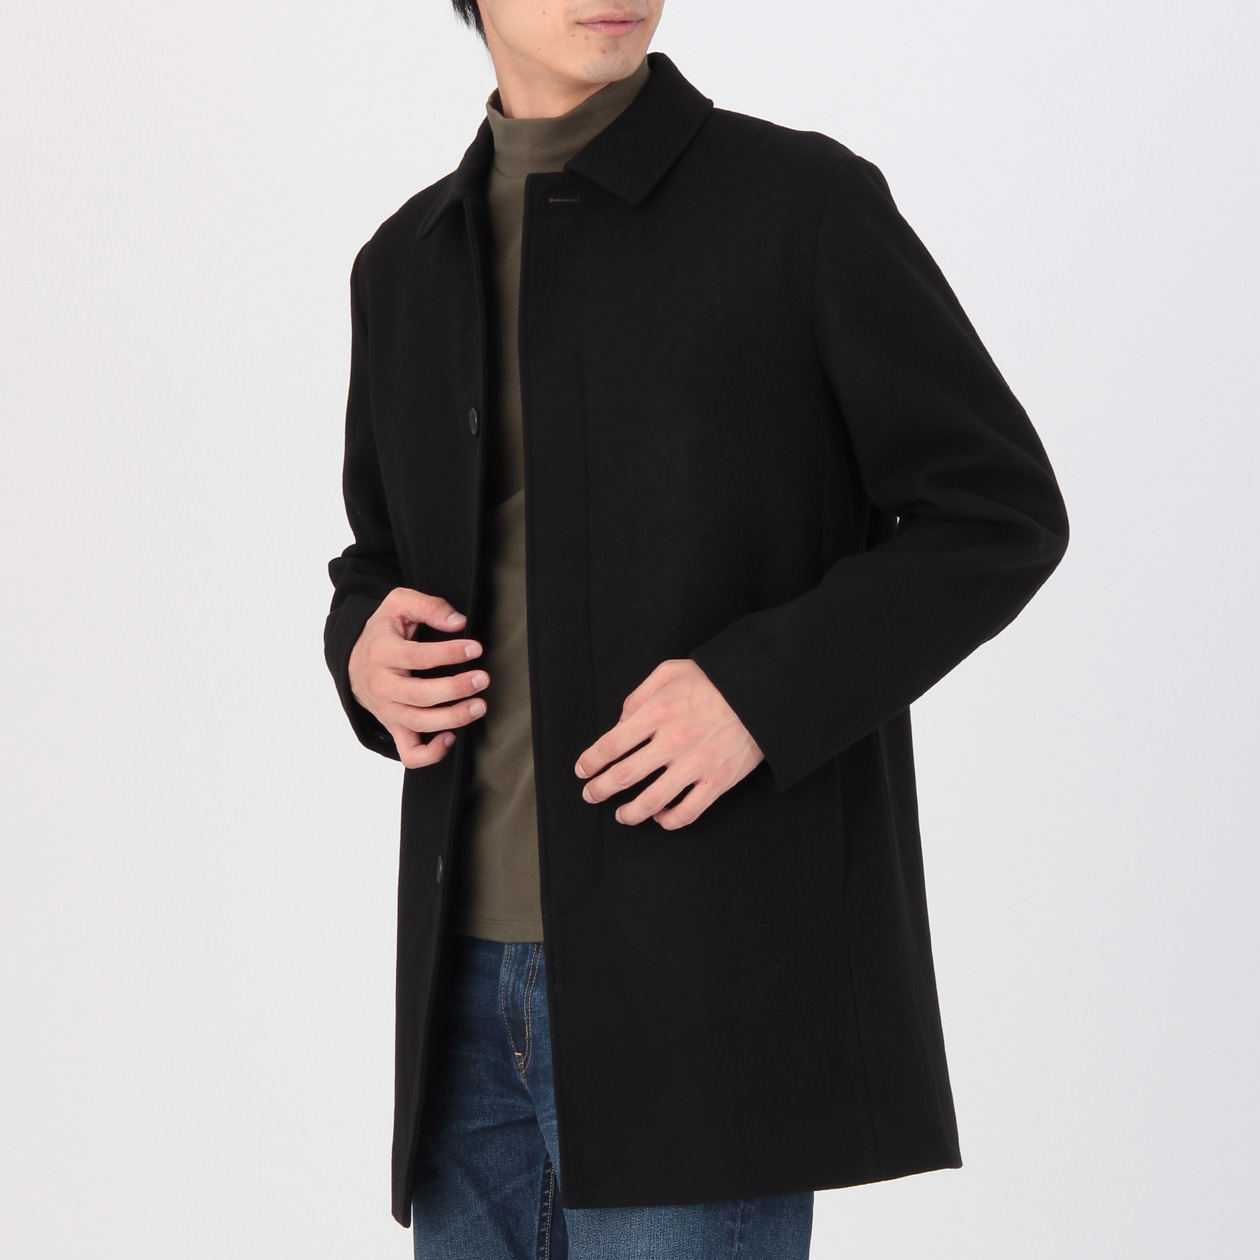 men 39 s yak mix melton stand fall collar coat muji. Black Bedroom Furniture Sets. Home Design Ideas